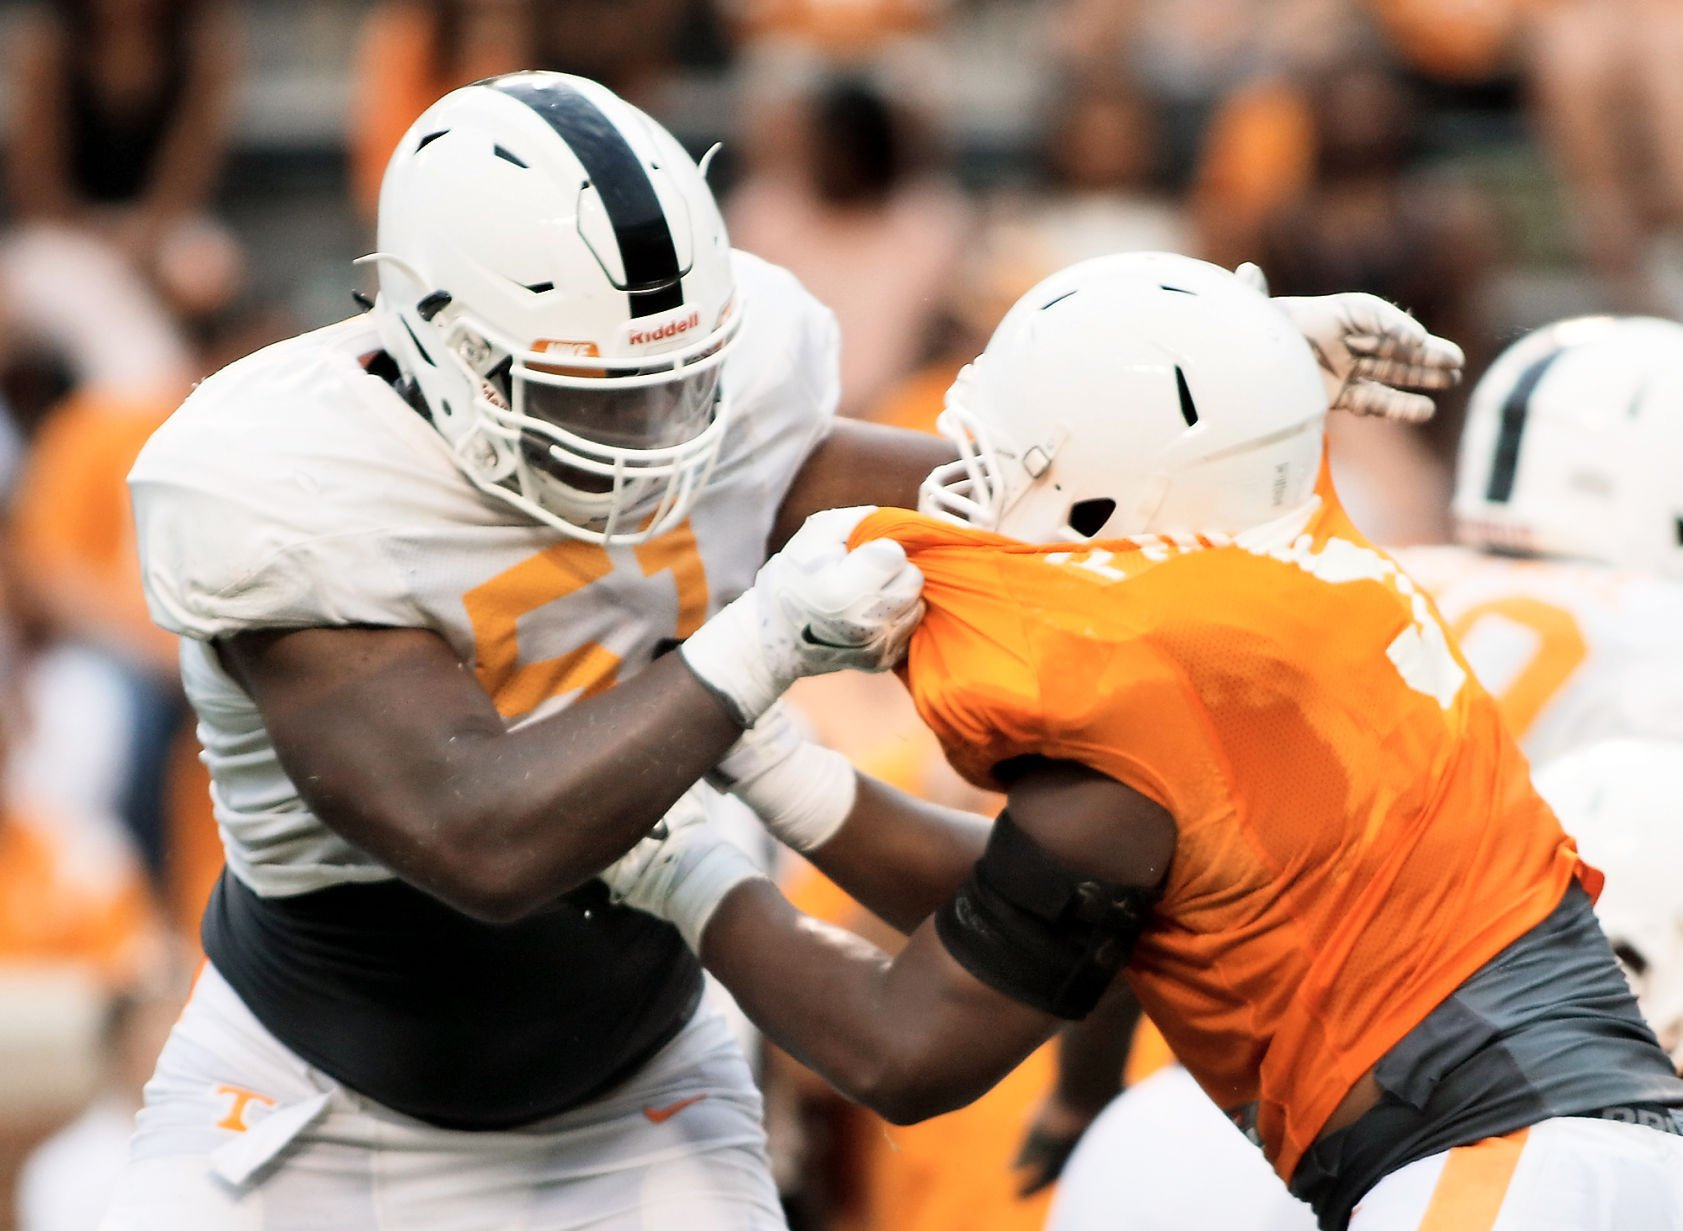 Vols Richmond suspended, Kirkland has surgery